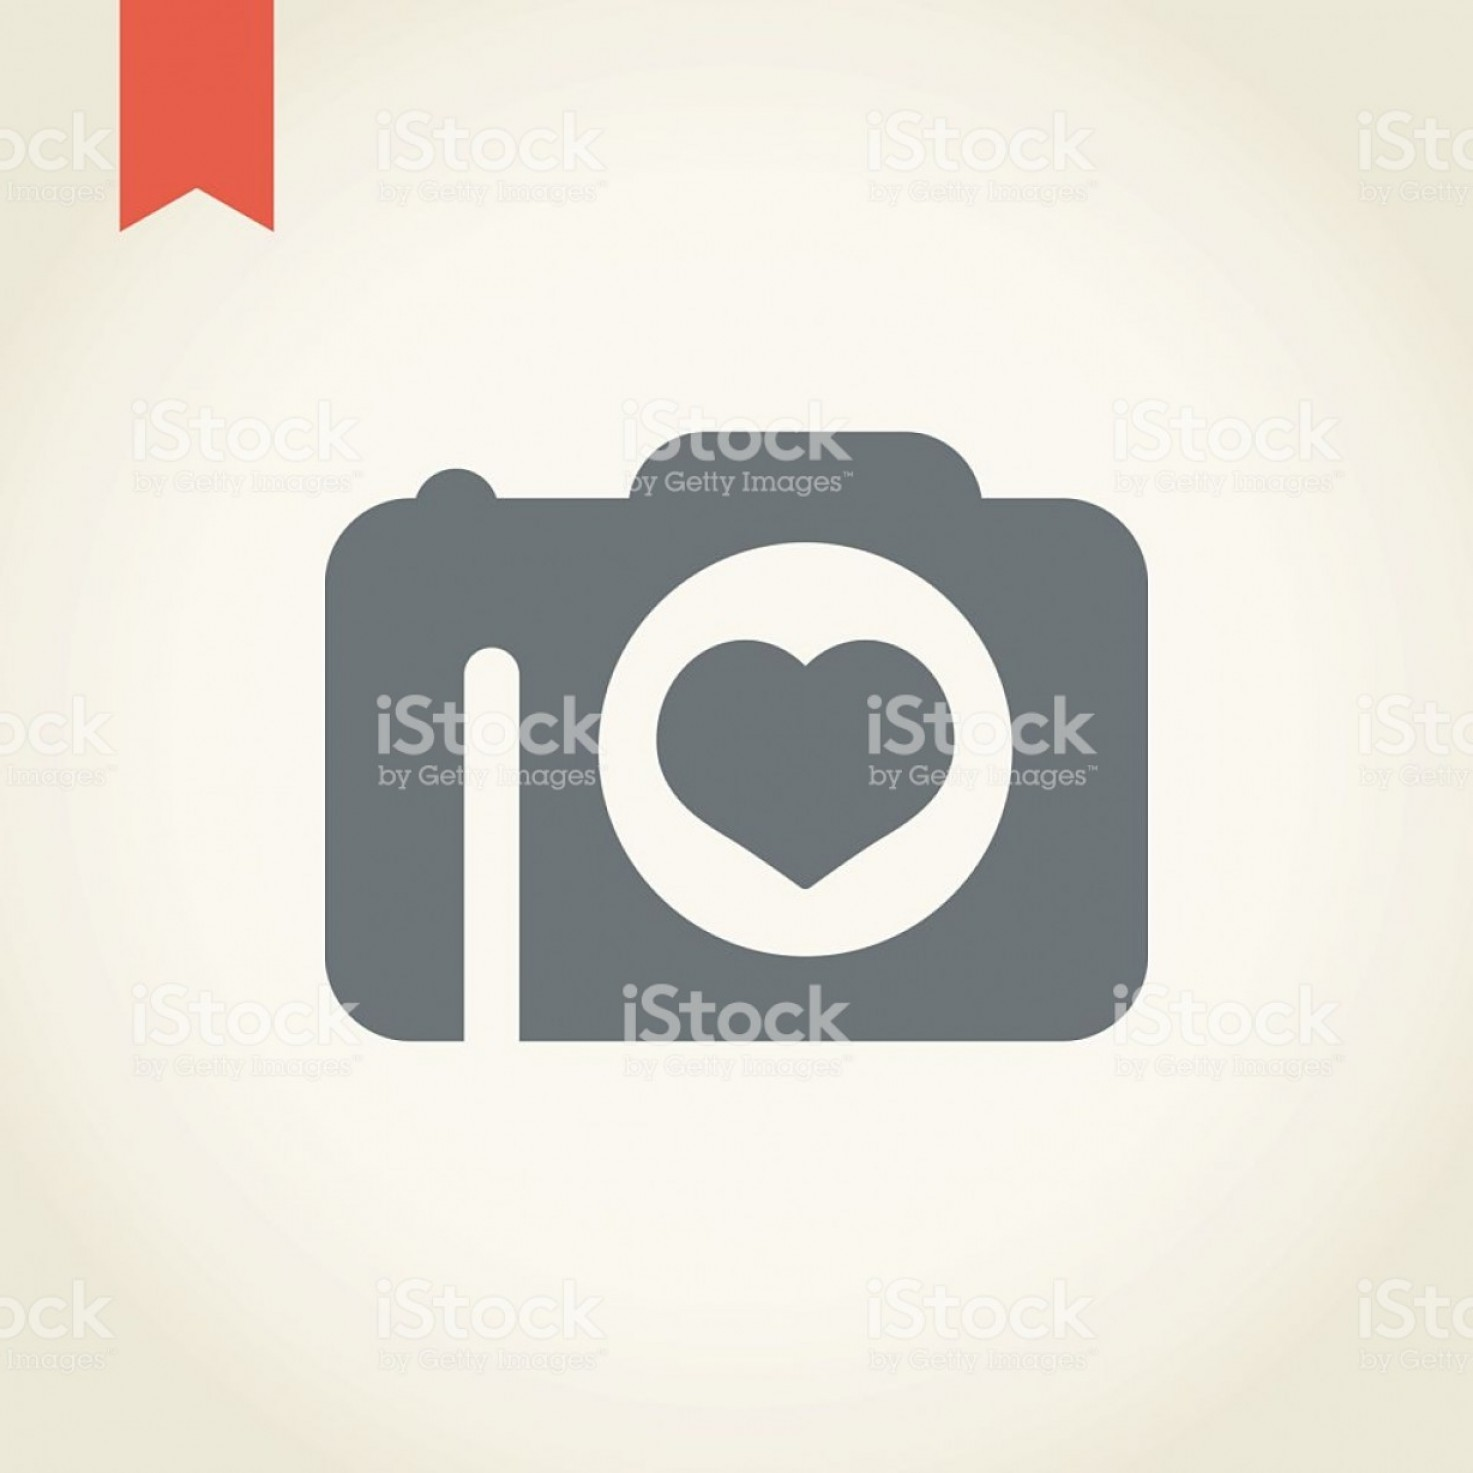 GM Logo Vector: Camera With Heart Shape Icon Gm